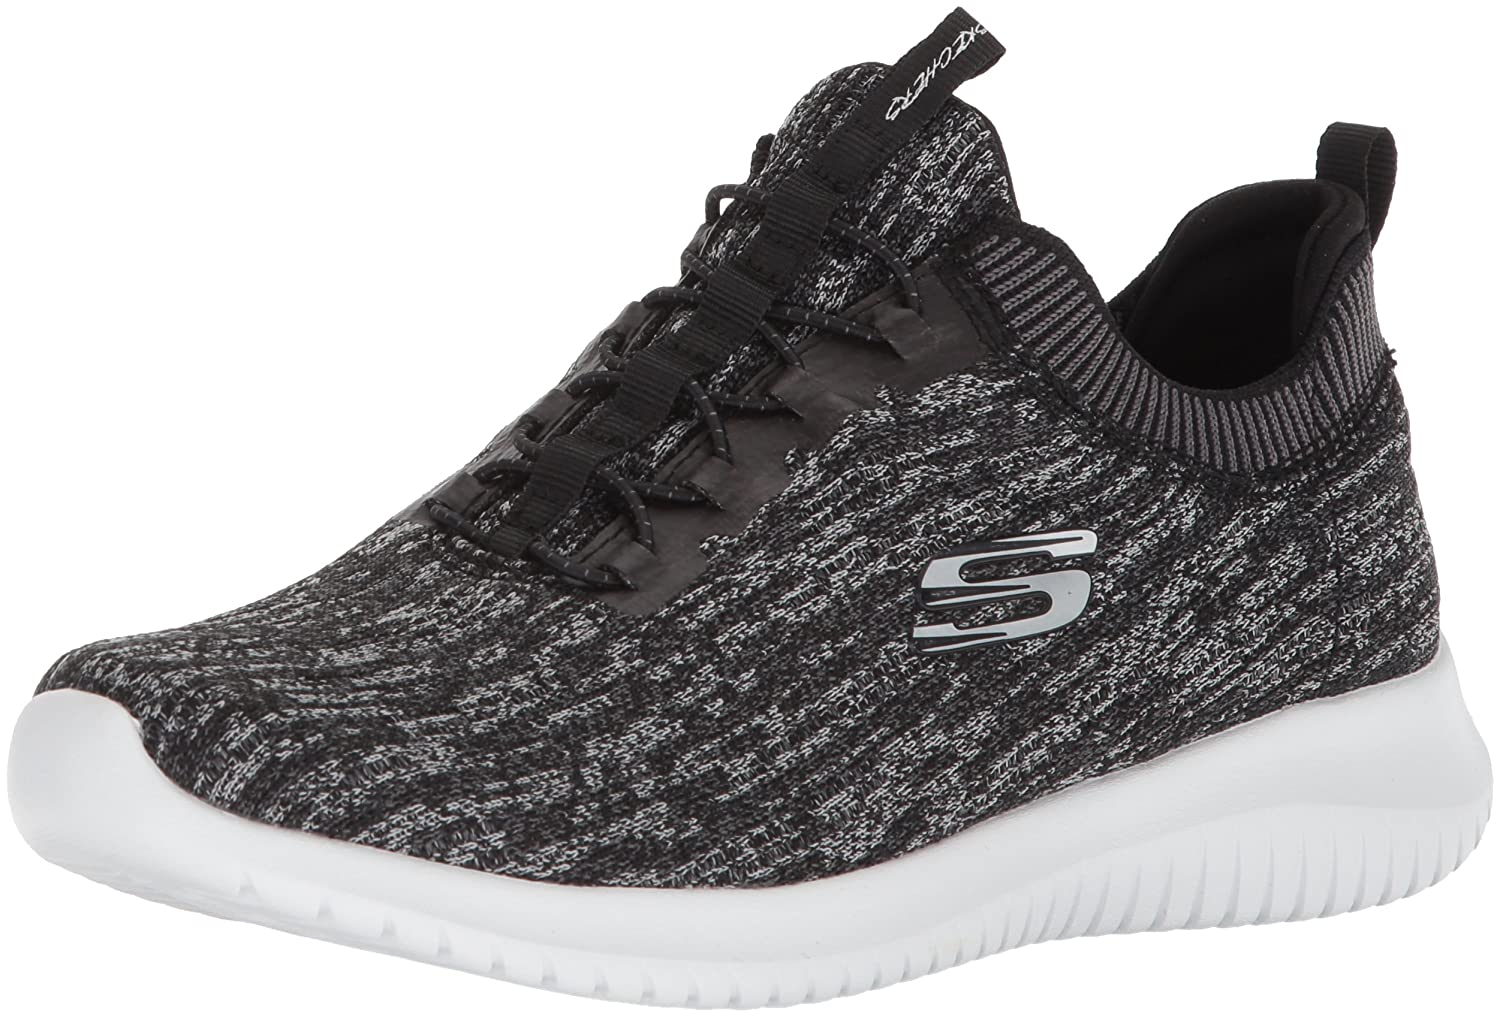 Skechers Women's Ultra Flex Bright Horizon Sneaker B01MYAM4MR 5 B(M) US|Black Gray